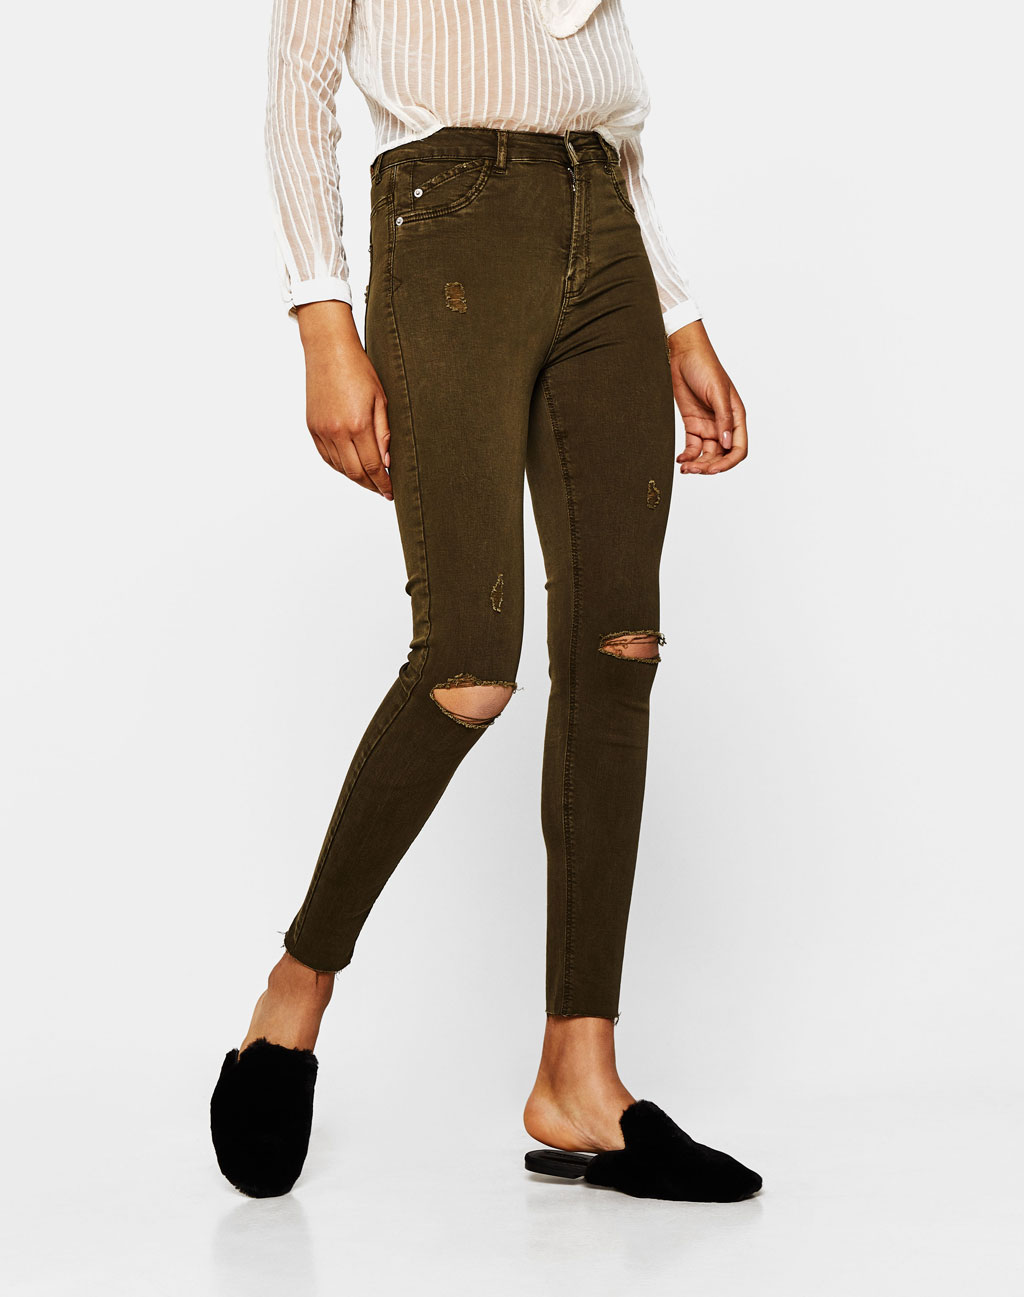 Ripped high waist pants